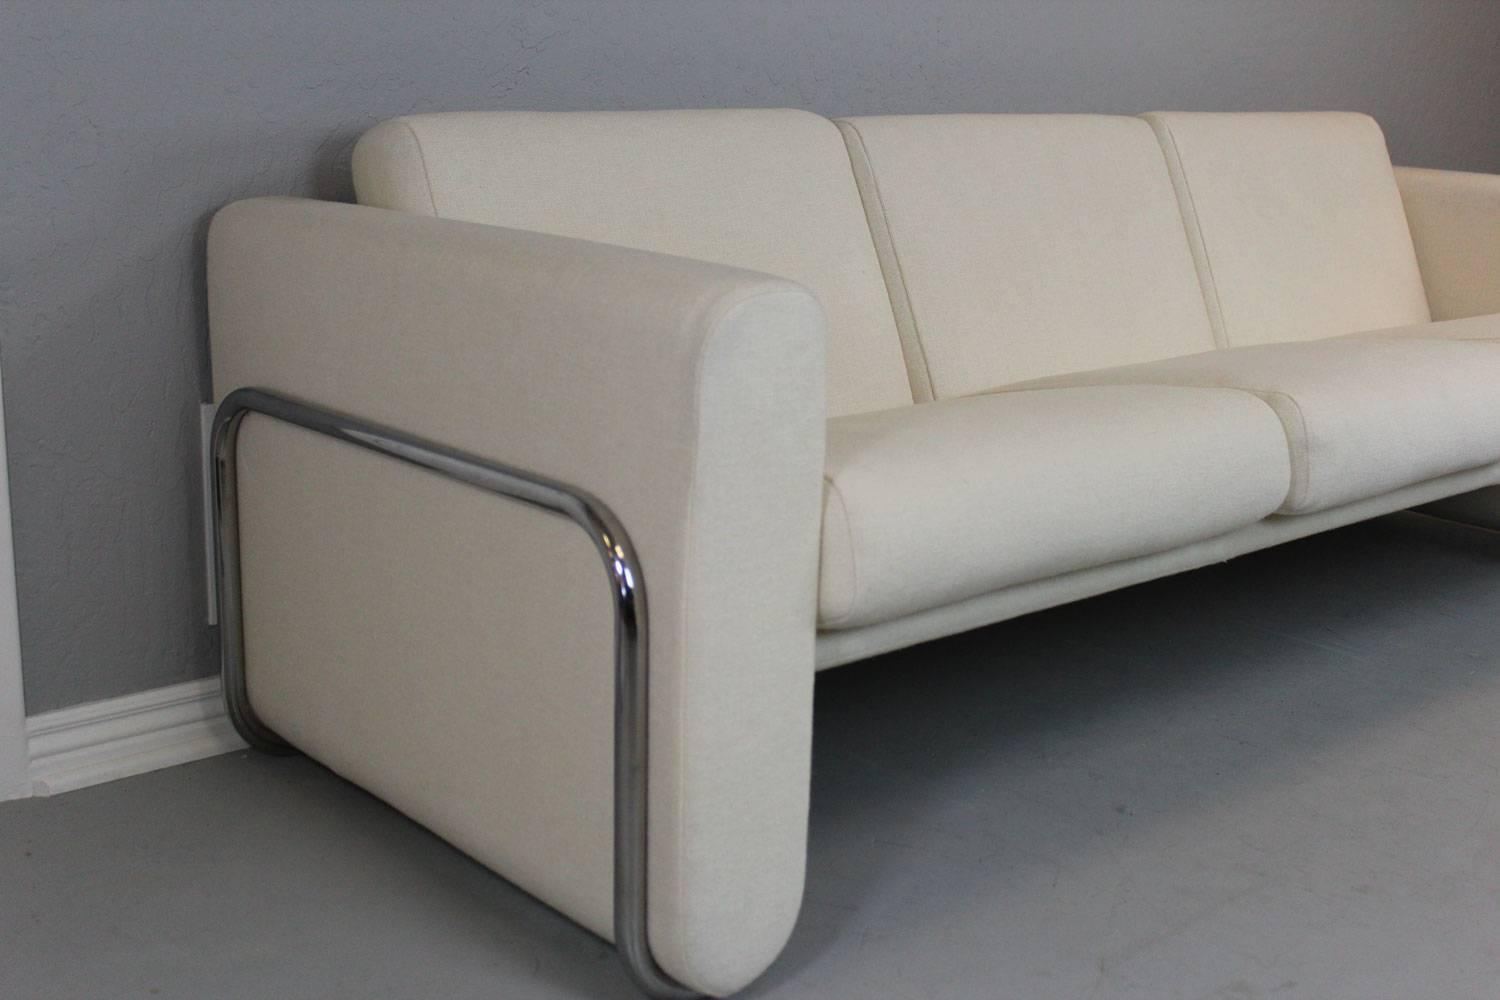 Lecorbusier Style White Sofa With Wrap Around Stainless Steel Frame At 1stdibs